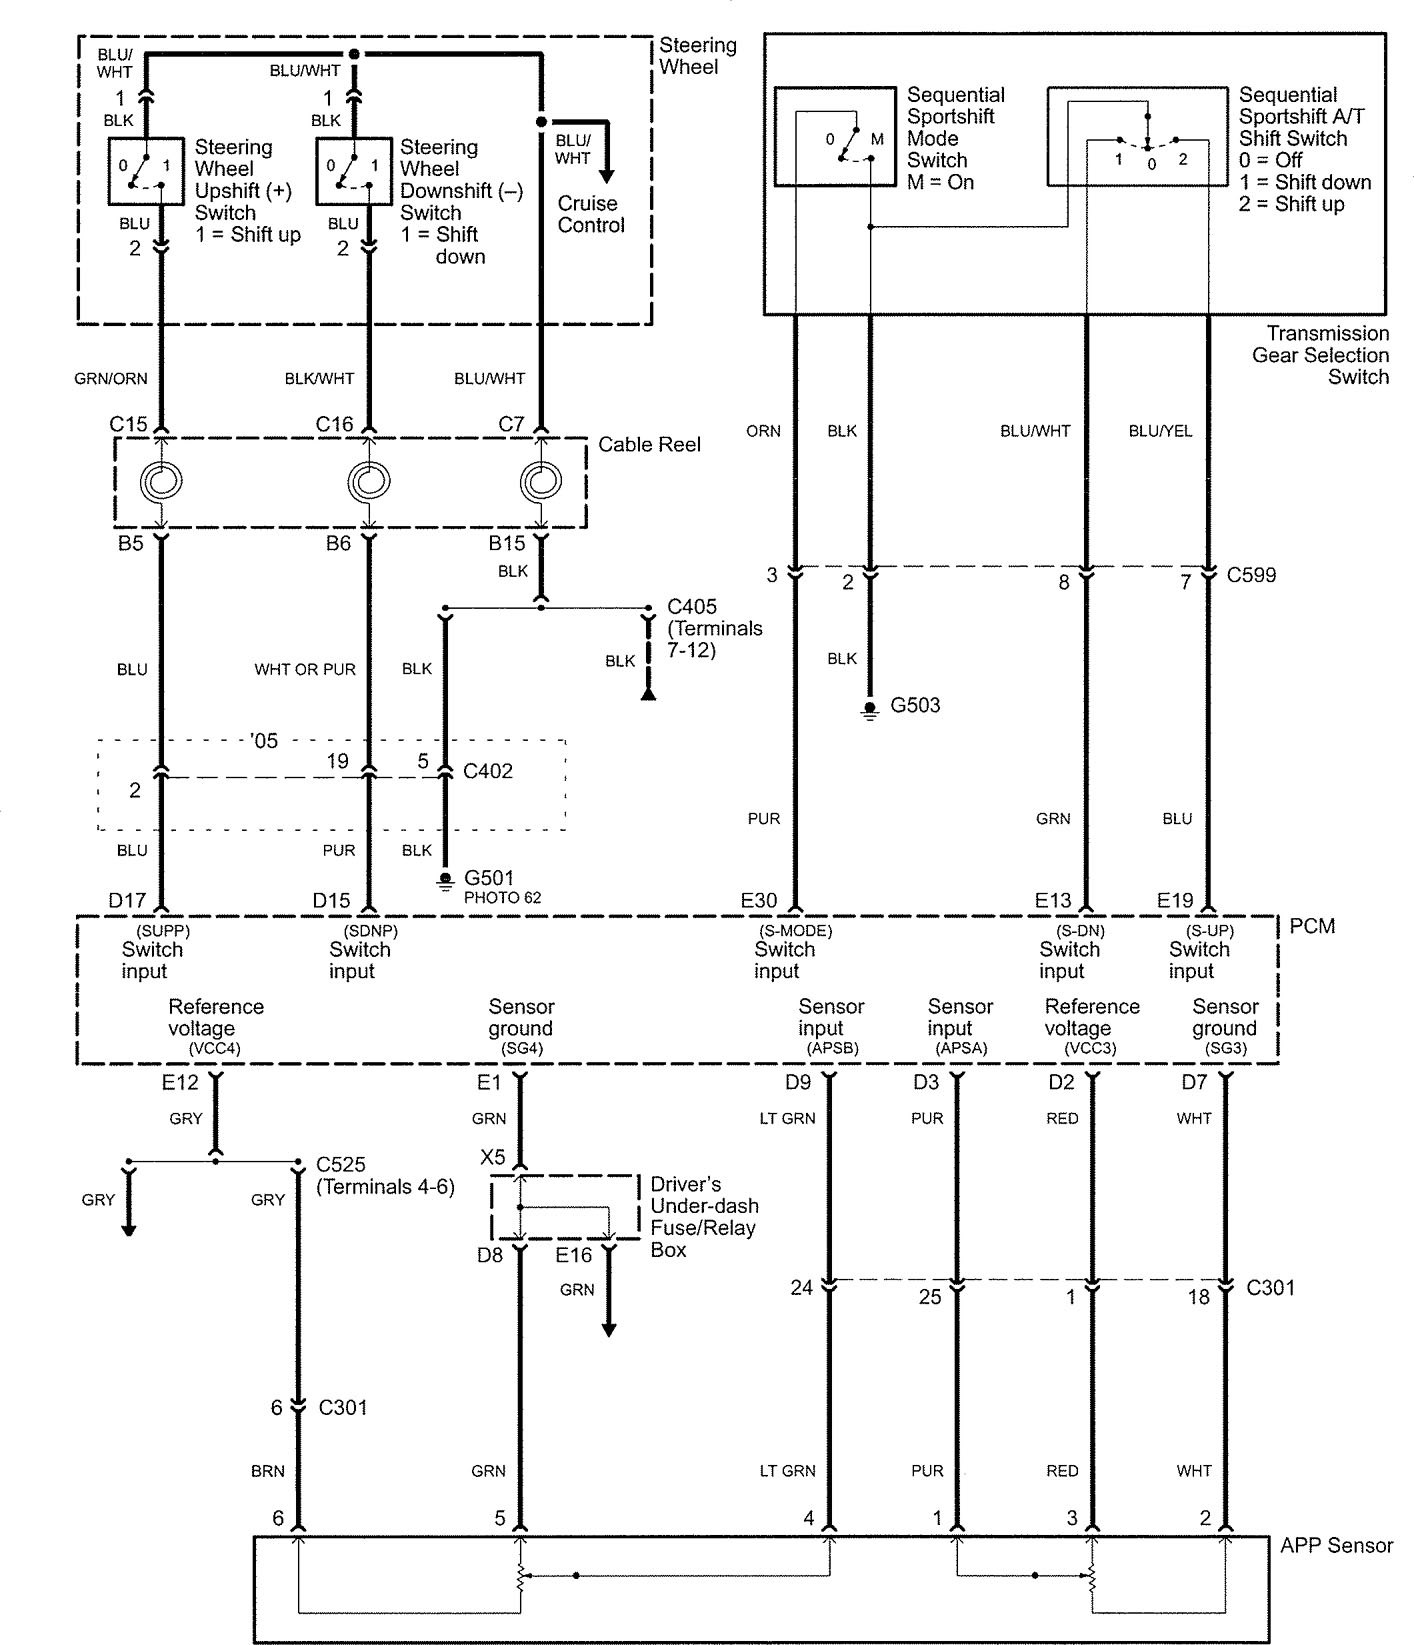 2005 Rl Transmission Diagram Trusted Wiring Acura Fuse Diagrams Controls Carknowledge Drive Shaft